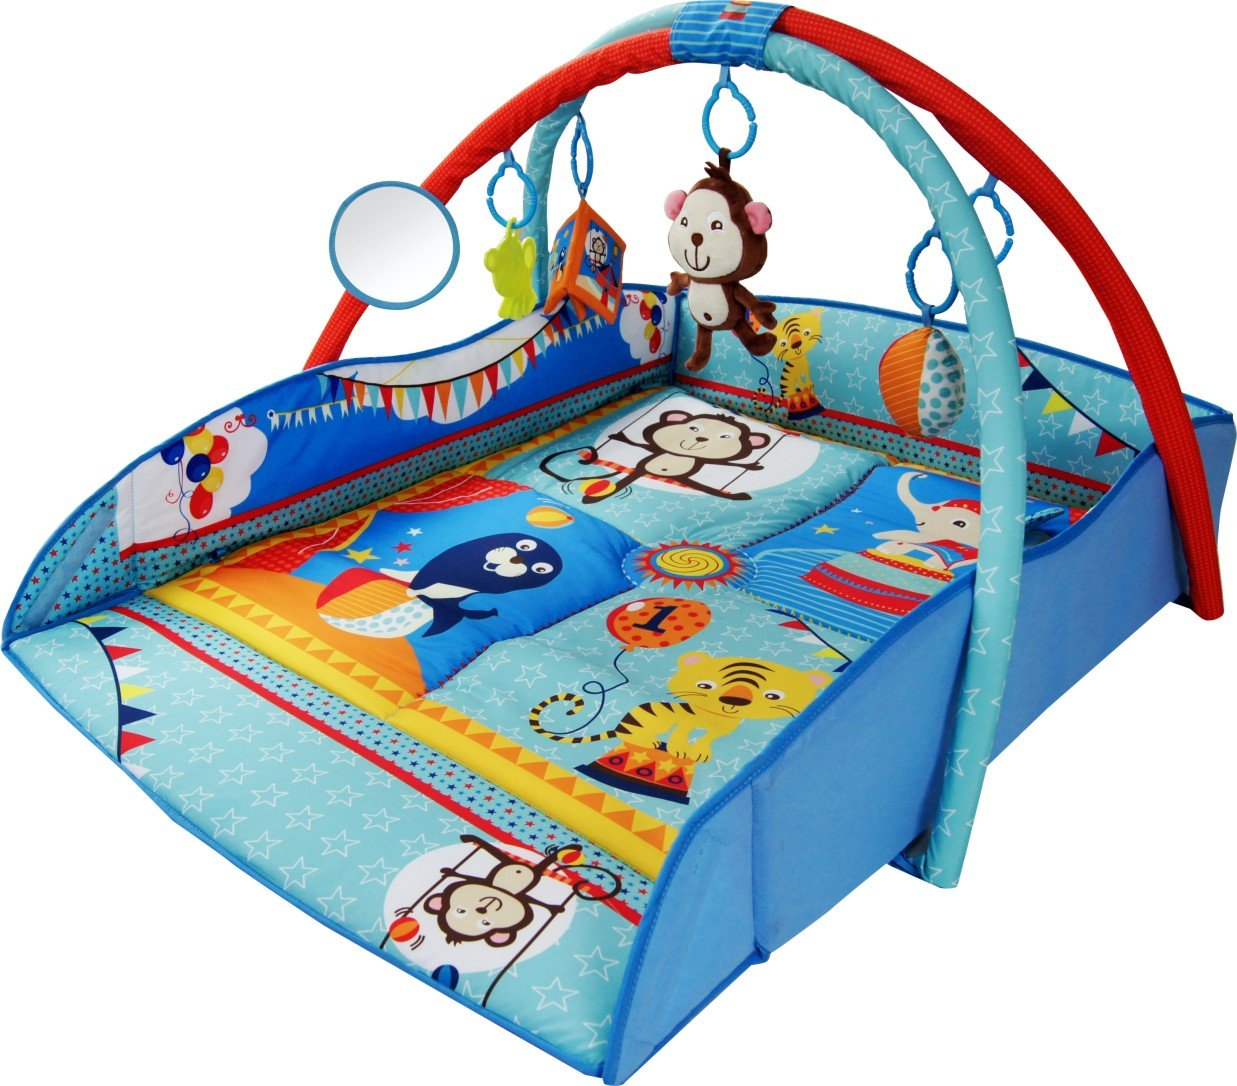 Bebe Style 4-in-1 Animal World Play Mat (Large) PM-HC9060Blue